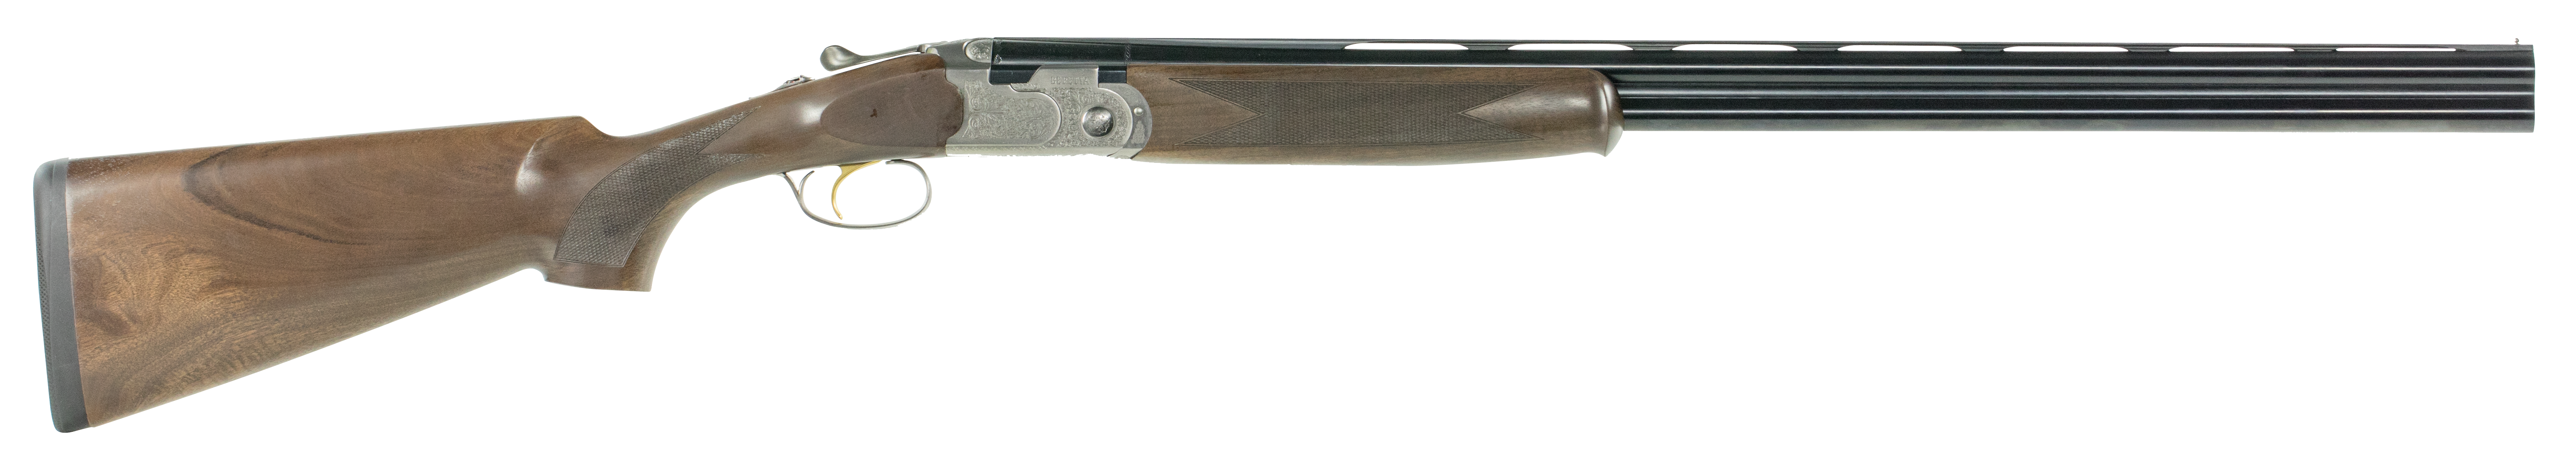 Beretta 686 Silver Pigeon I Over/Under Shotgun 2.75'' 28 Gauge 26'' Silver Engraved - Walnut